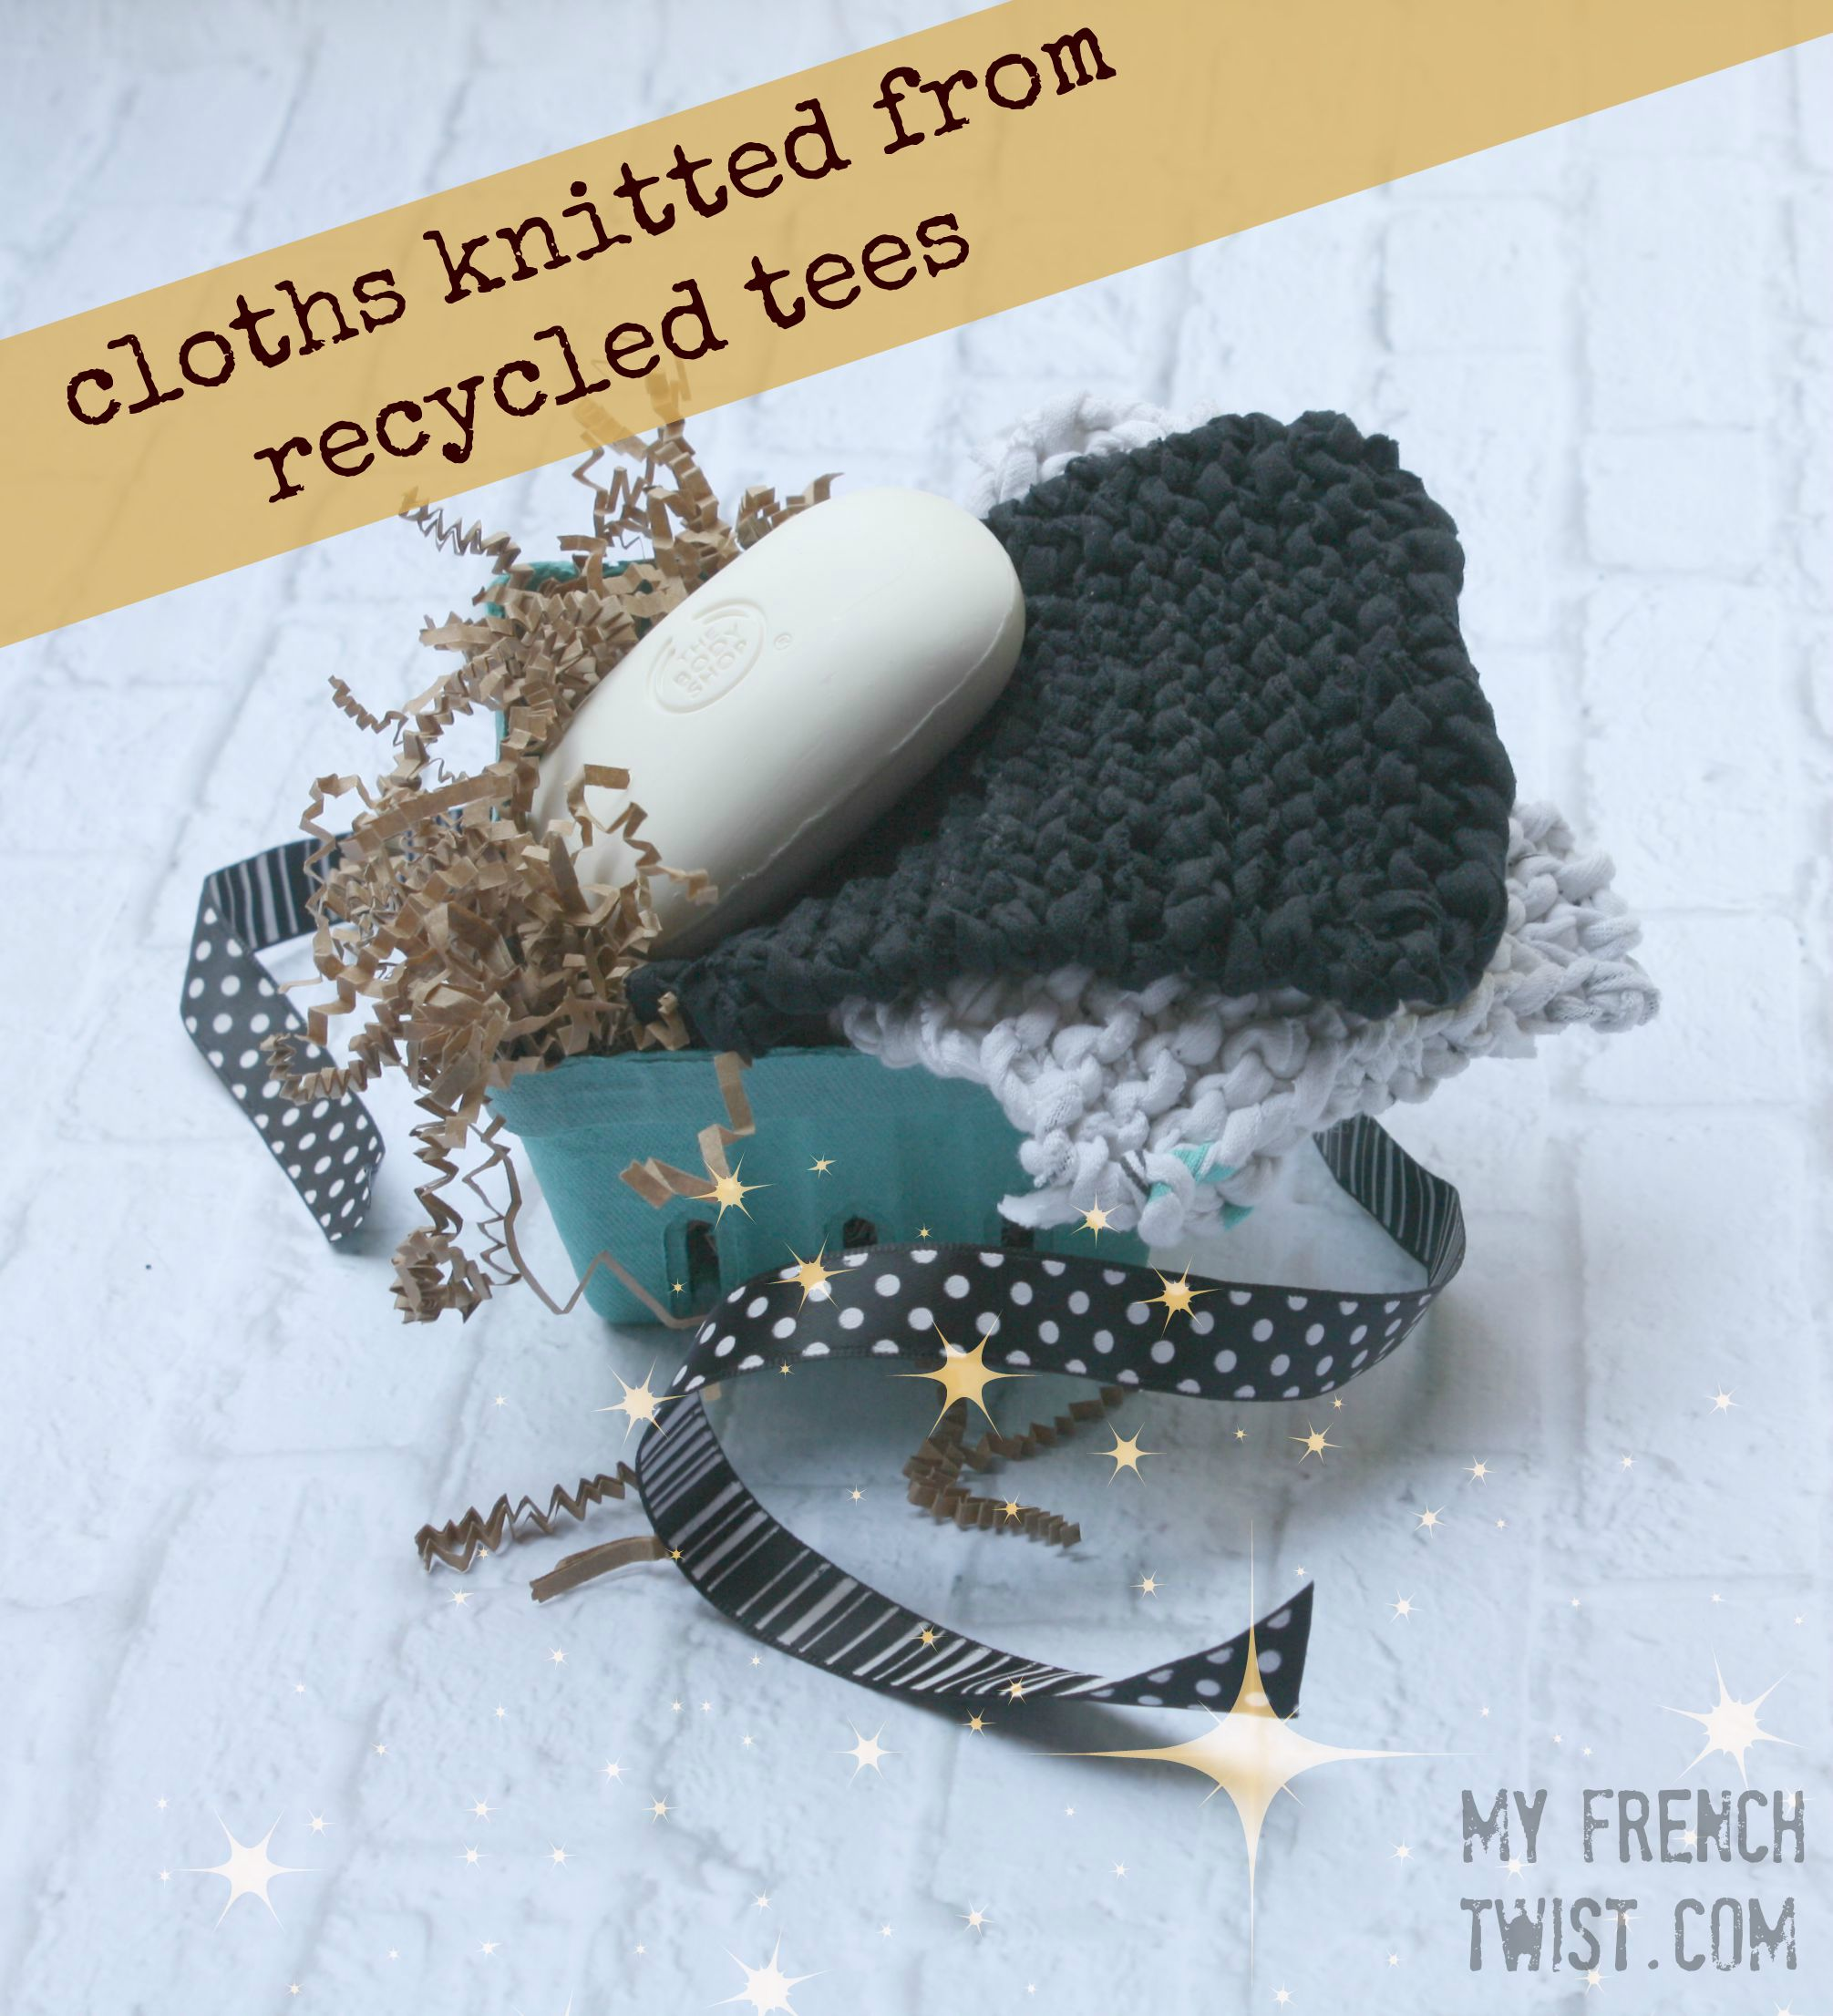 cloths knitted from recycled tees - my french twist